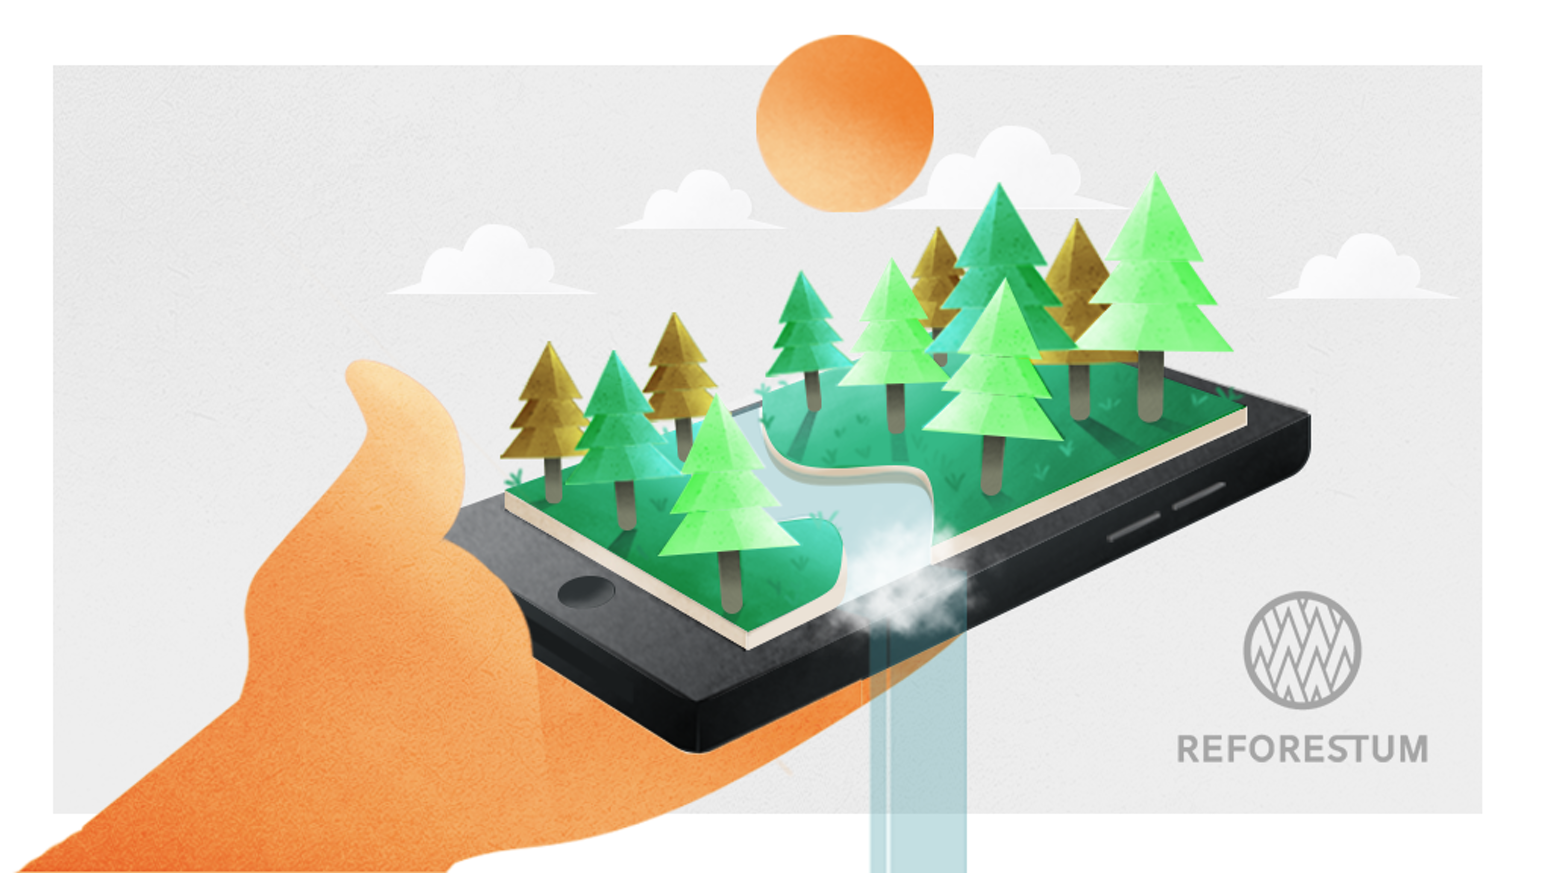 Did you ever want to plant a tree to help make the world a better place? How about planting a whole forest through our App?